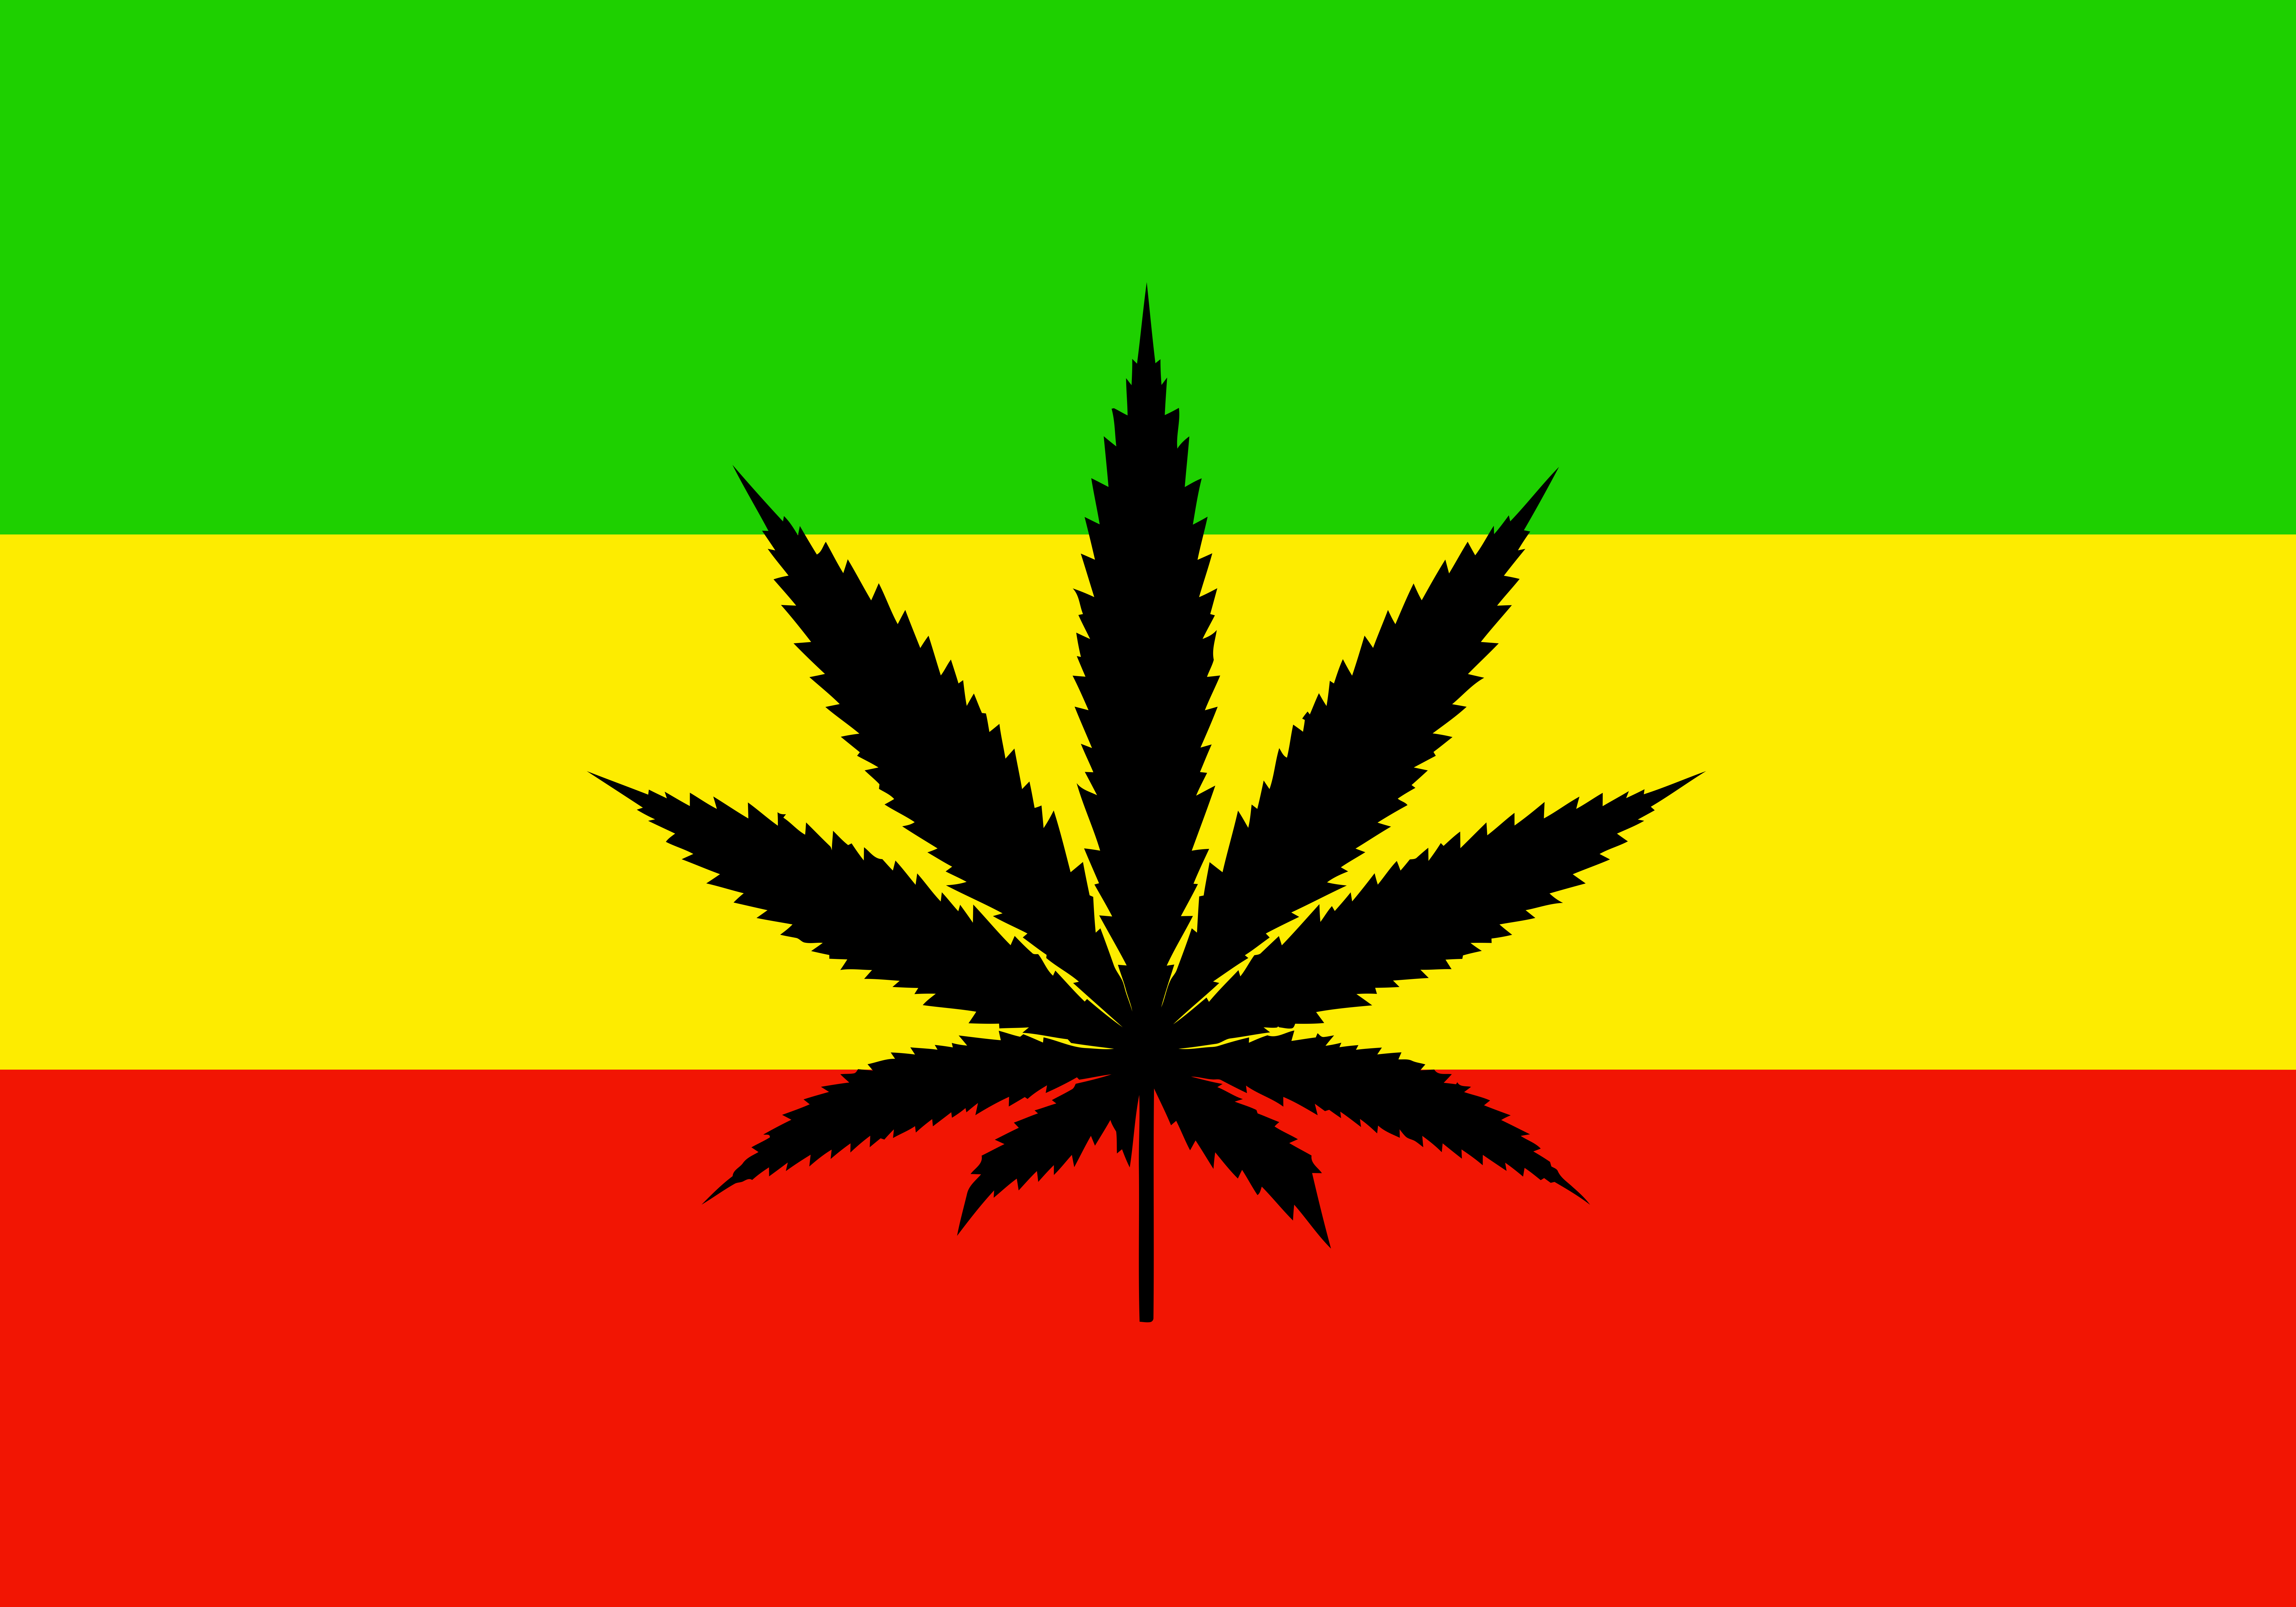 File Name : Rasta-Flag-with-weed.png Resolution : 7680x7680 Image Type ...